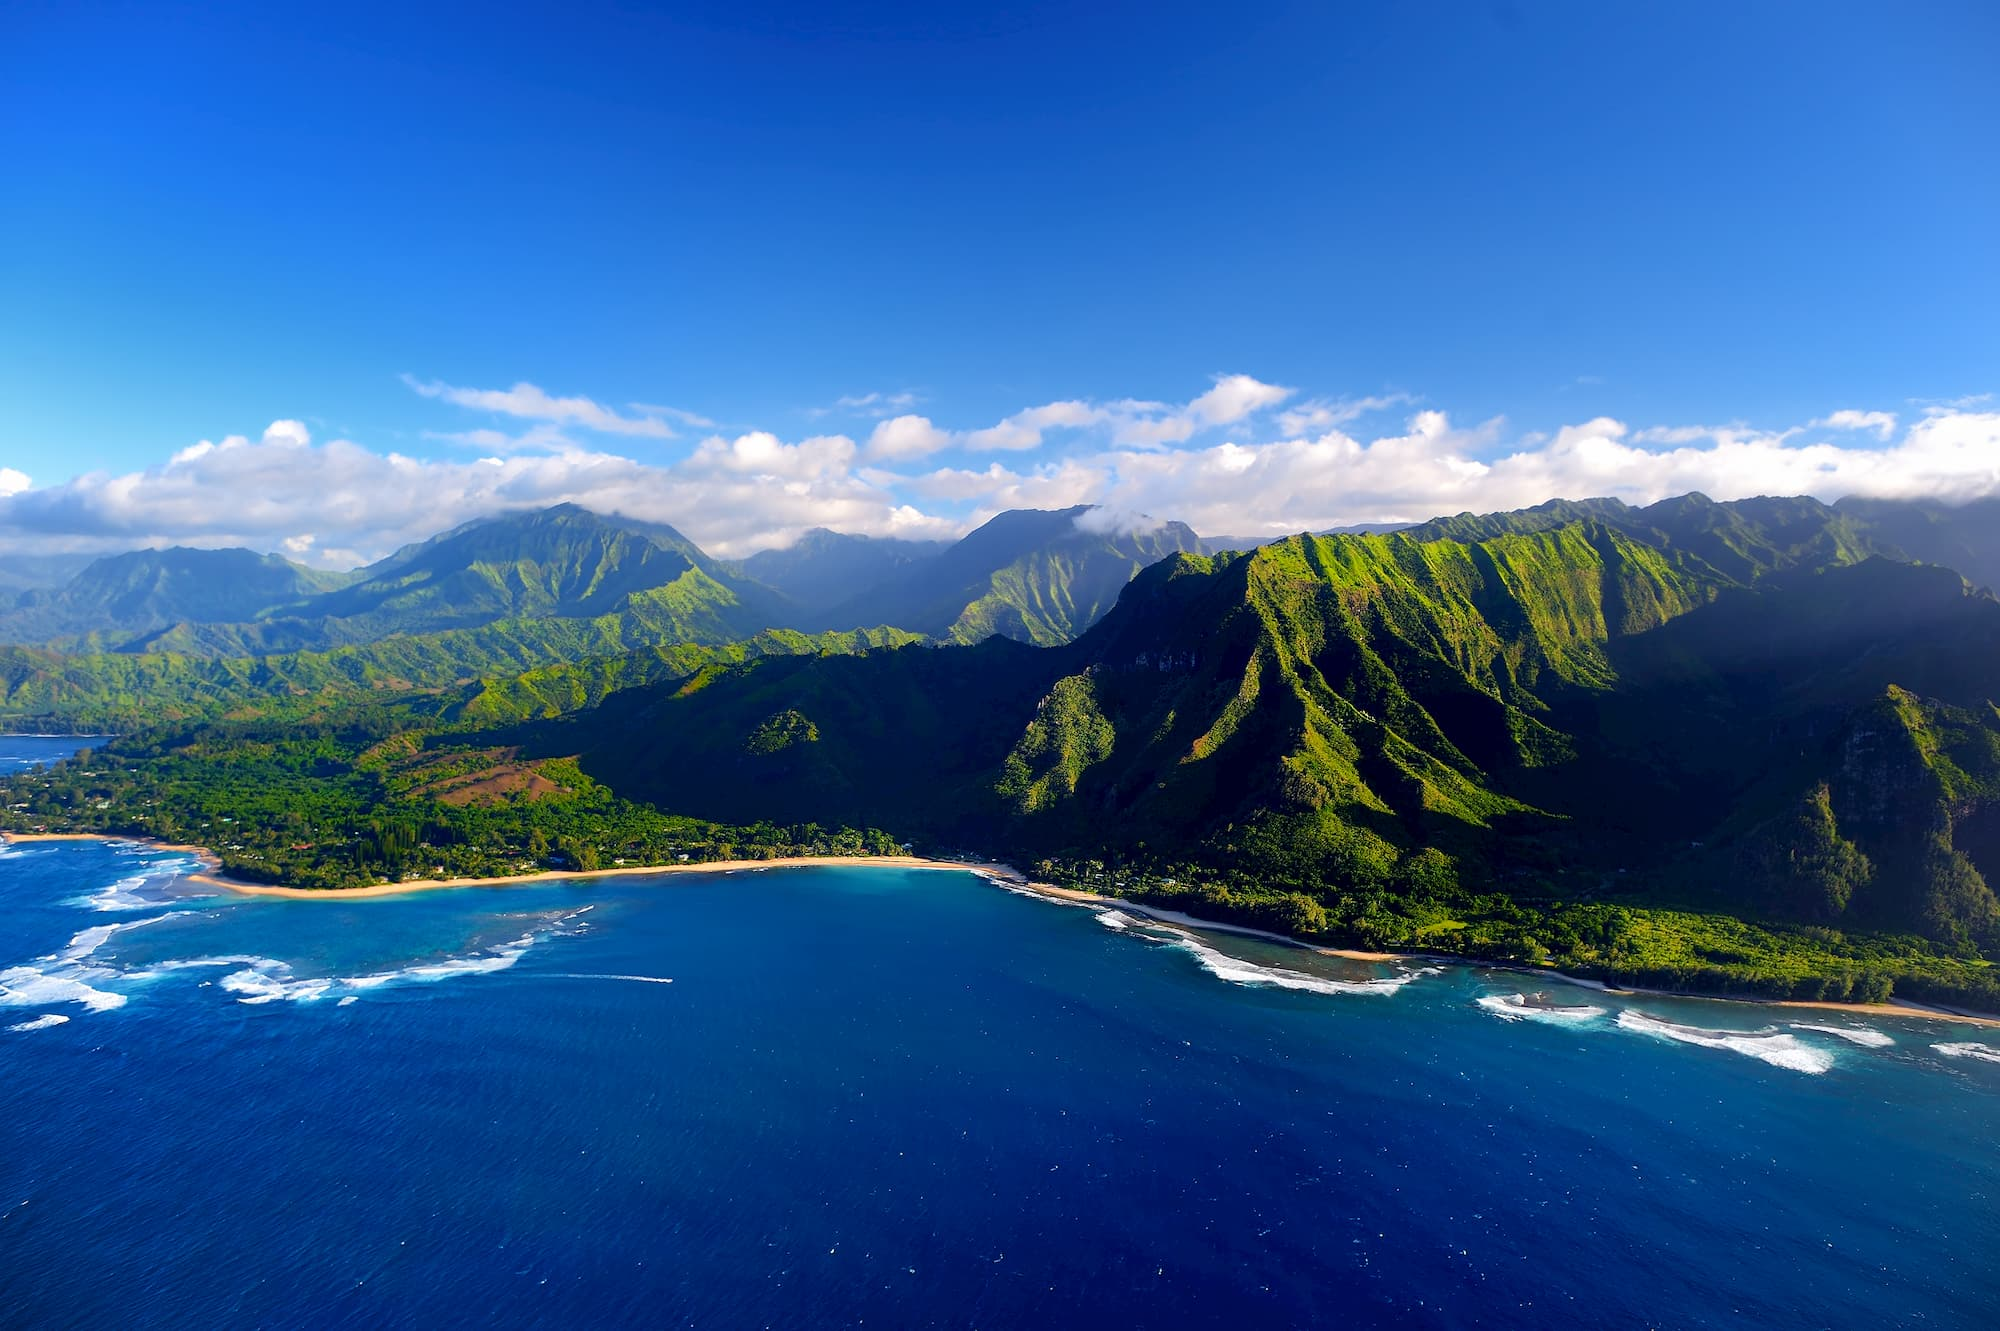 An overview of Kauai